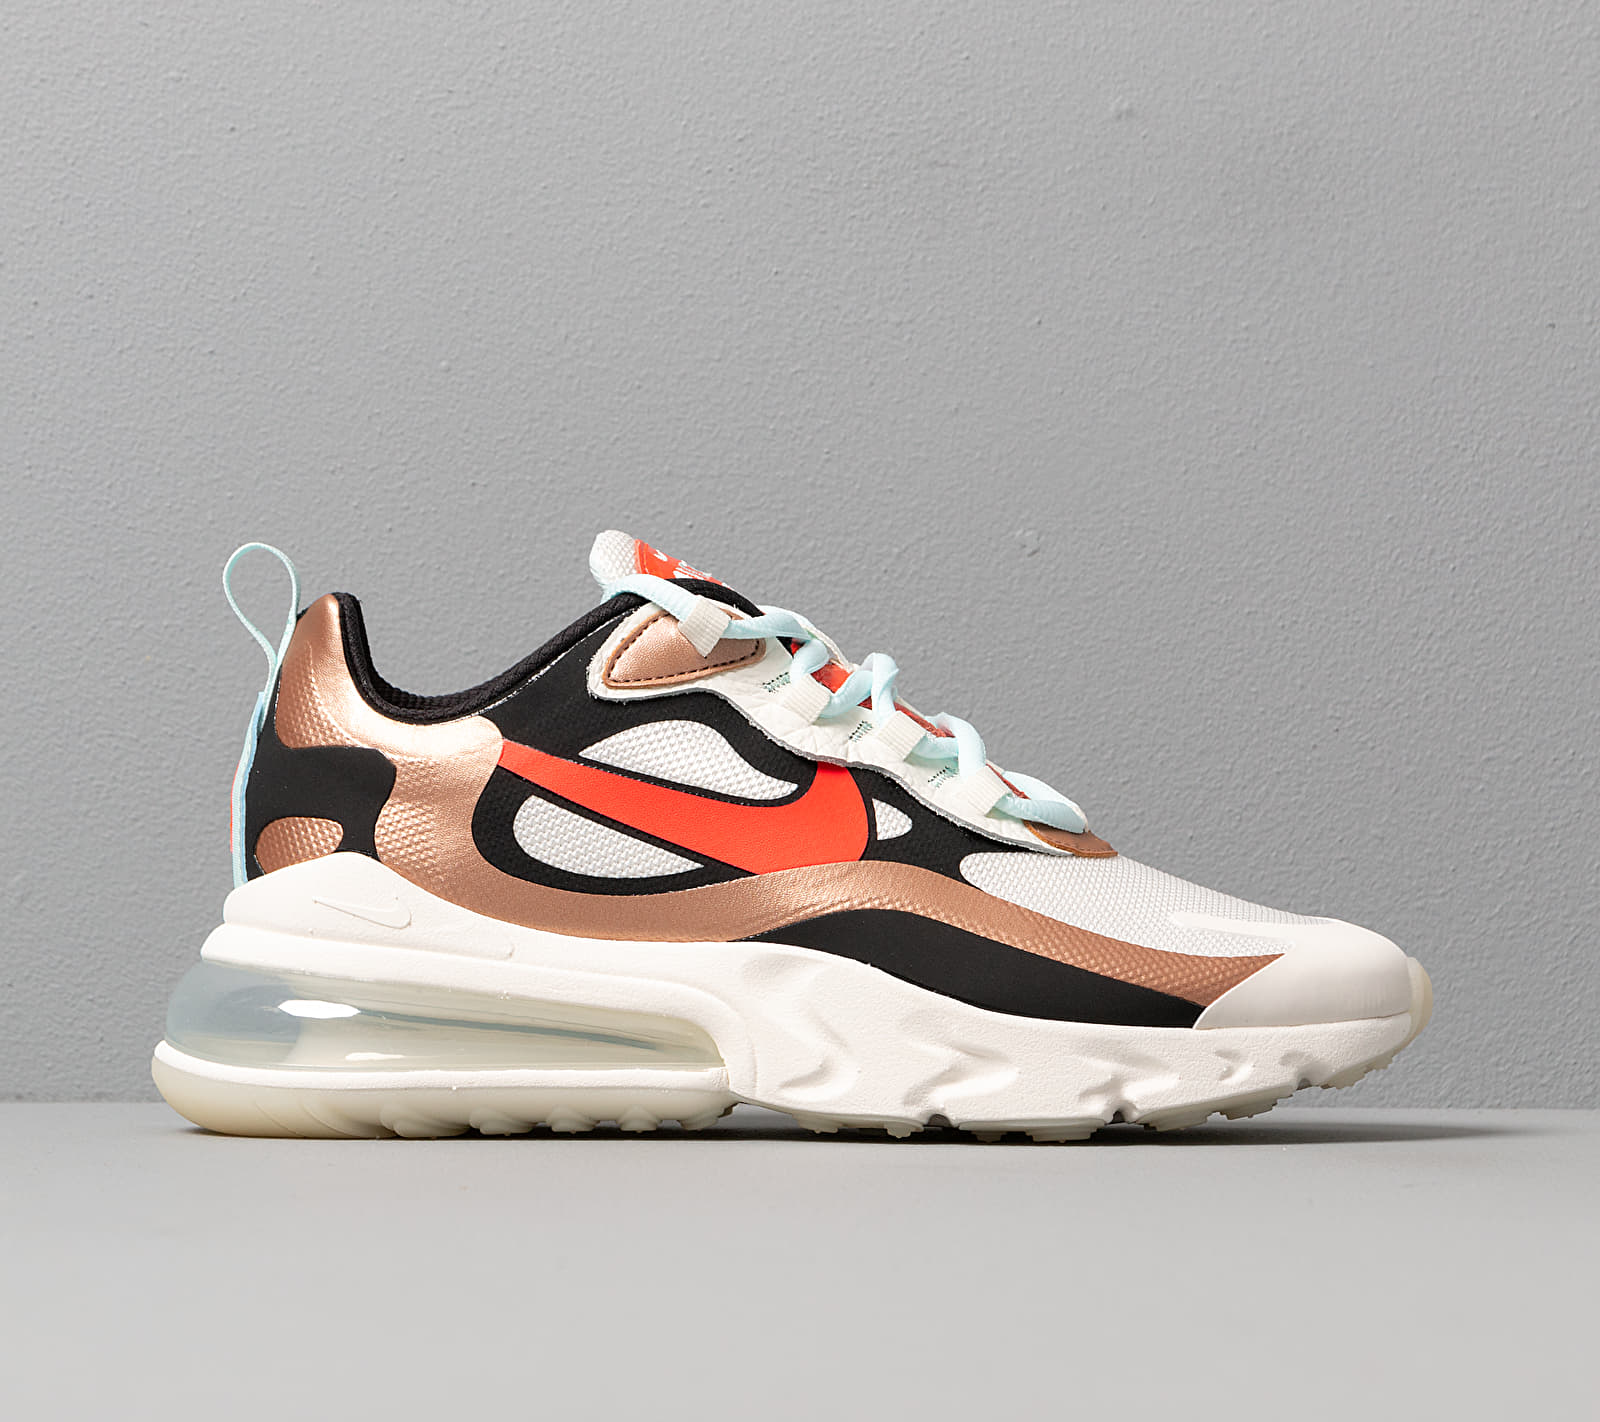 Nike Wmns Air Max 270 React Sail/ Black-Mtlc Red Bronze-Pure Platinum, Brown